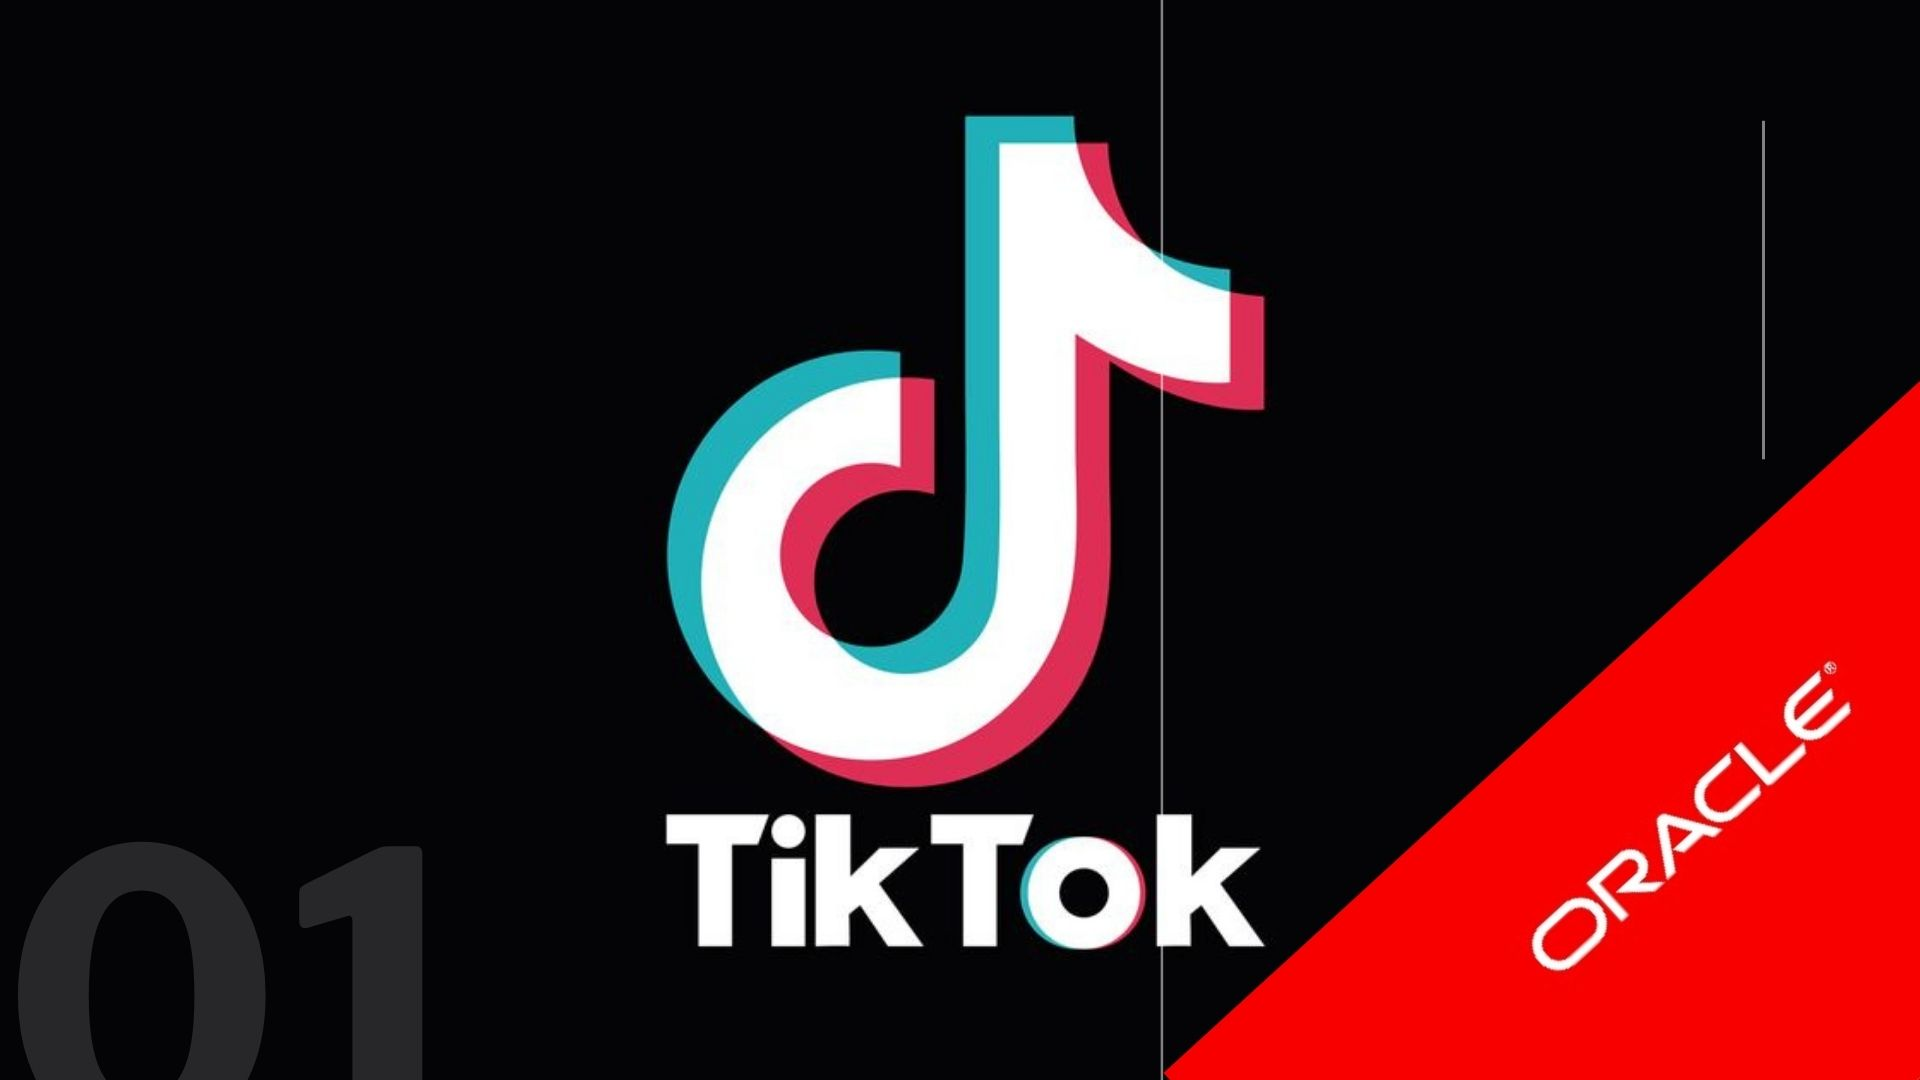 partner of TikTok